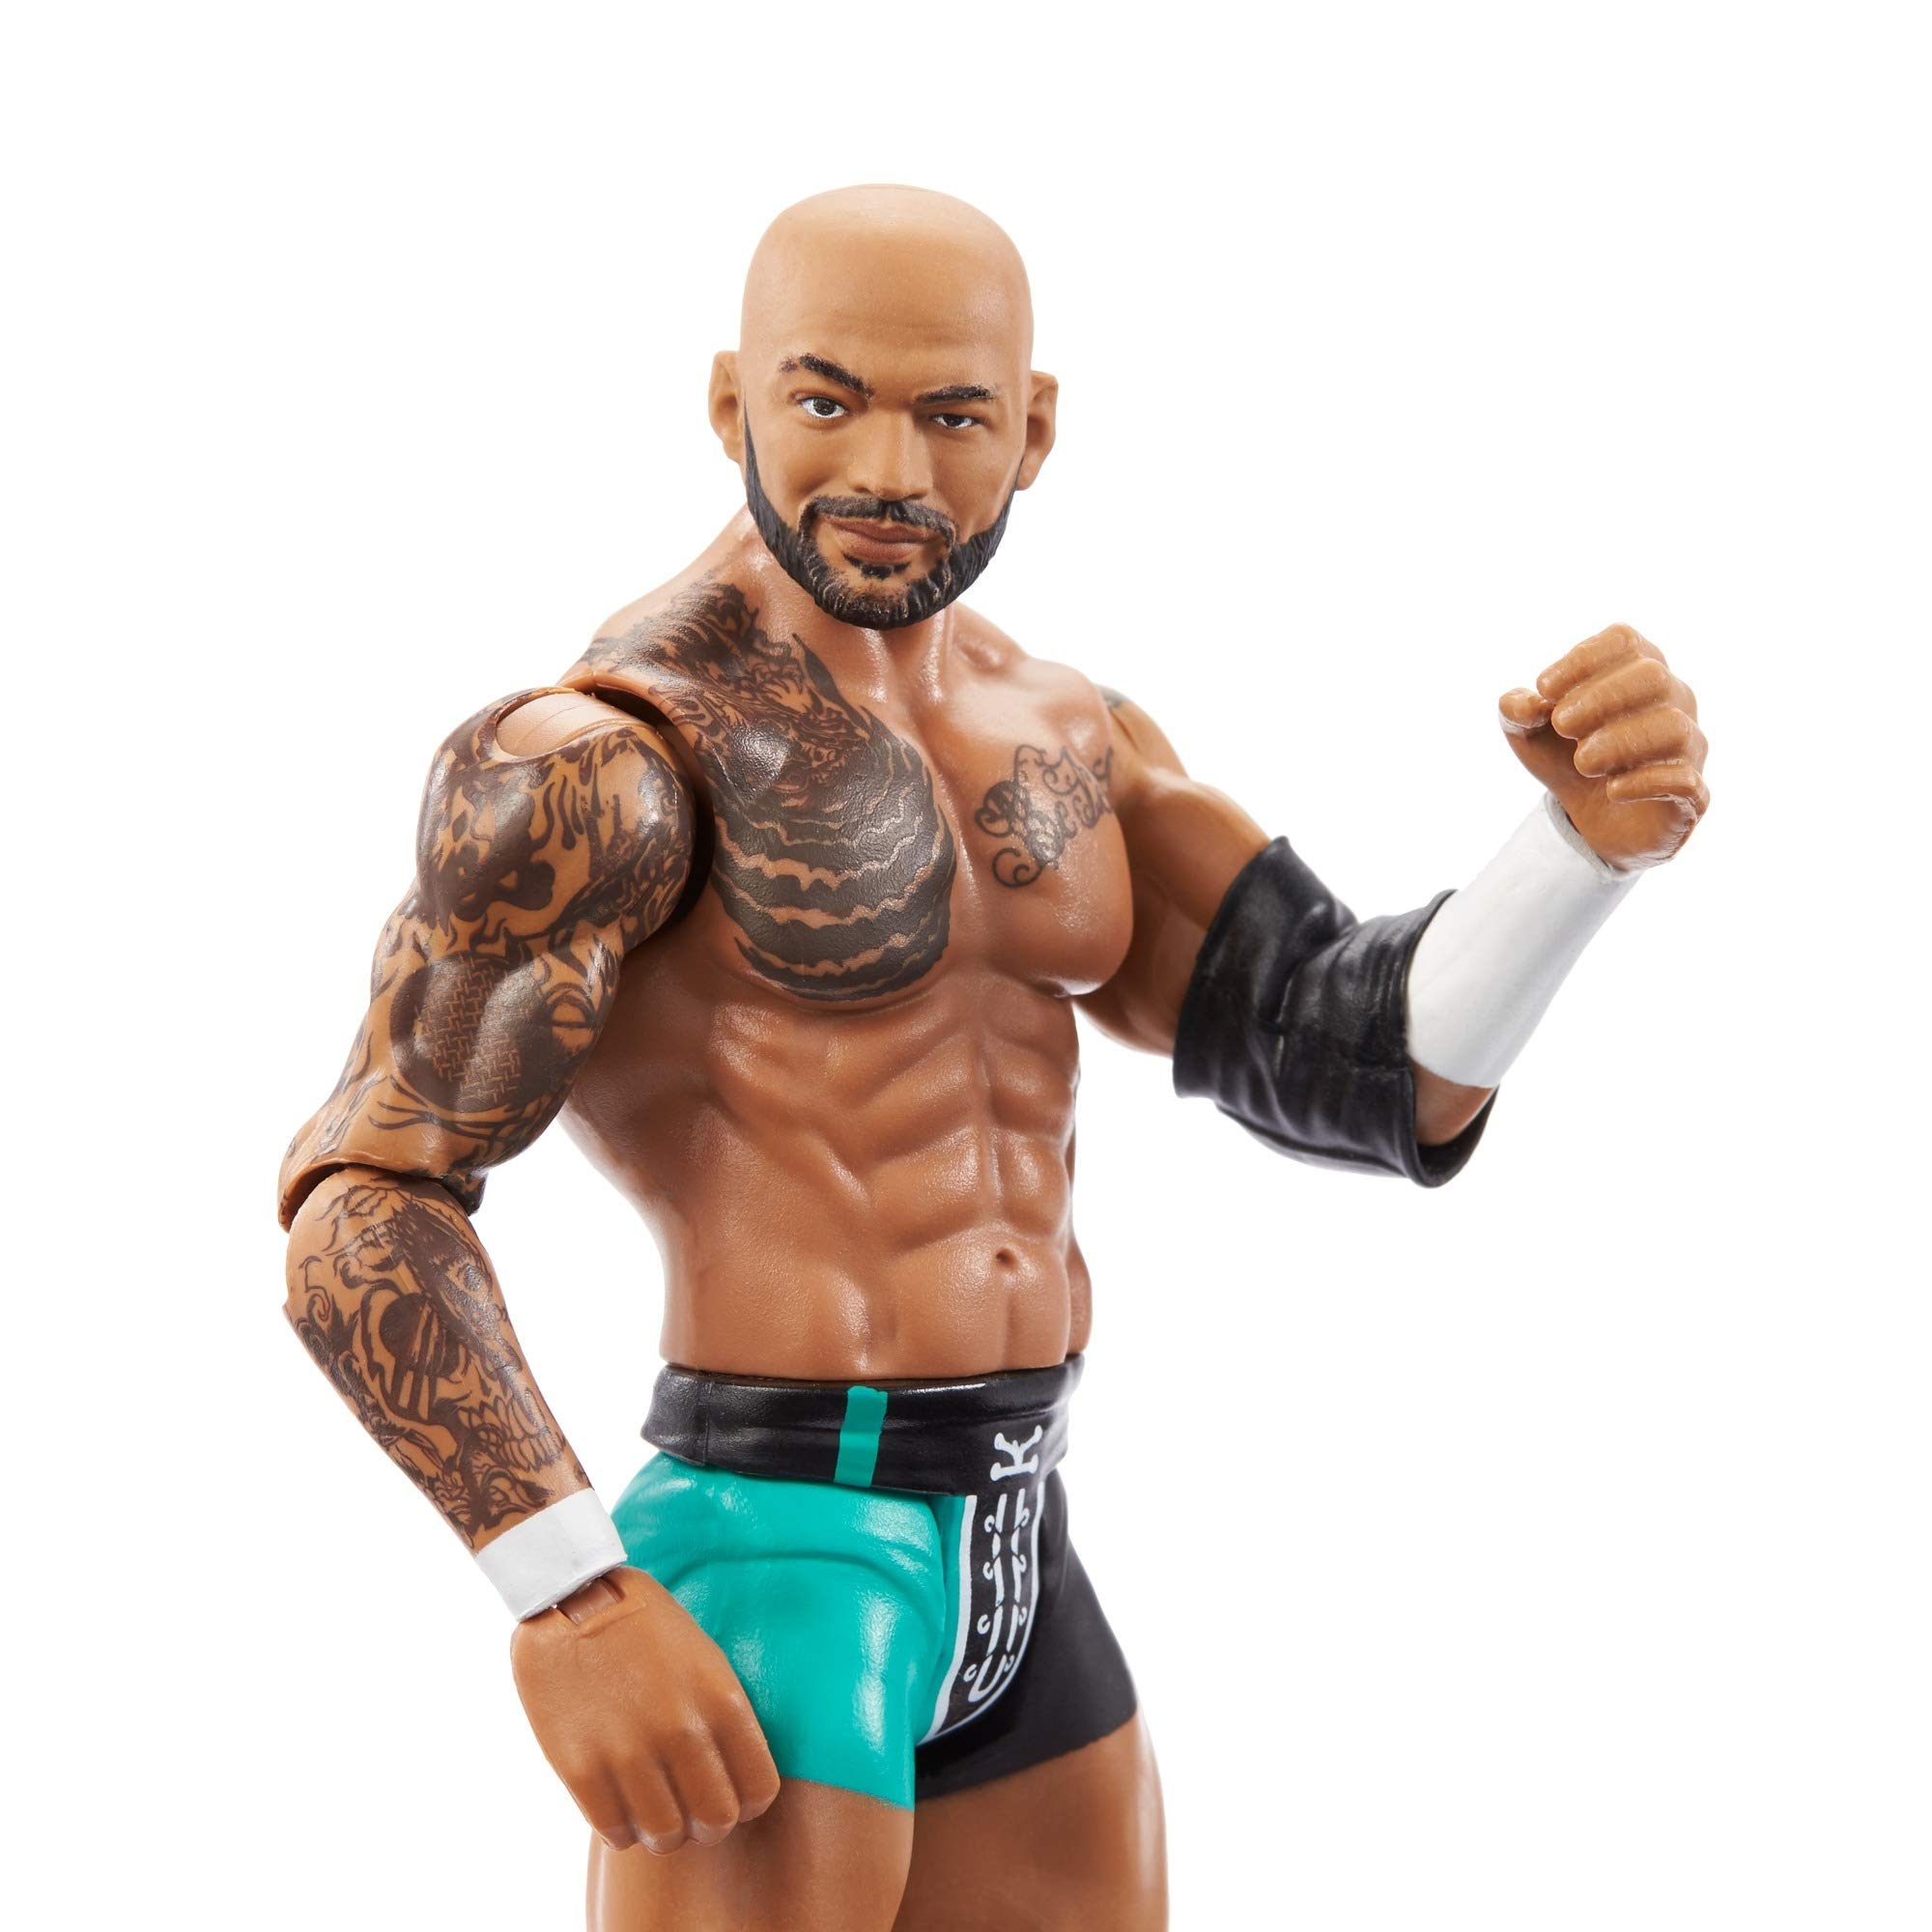 WWE Ricochet Action Figure, Posable 6-in Collectible for Ages 6 Years Old & Up